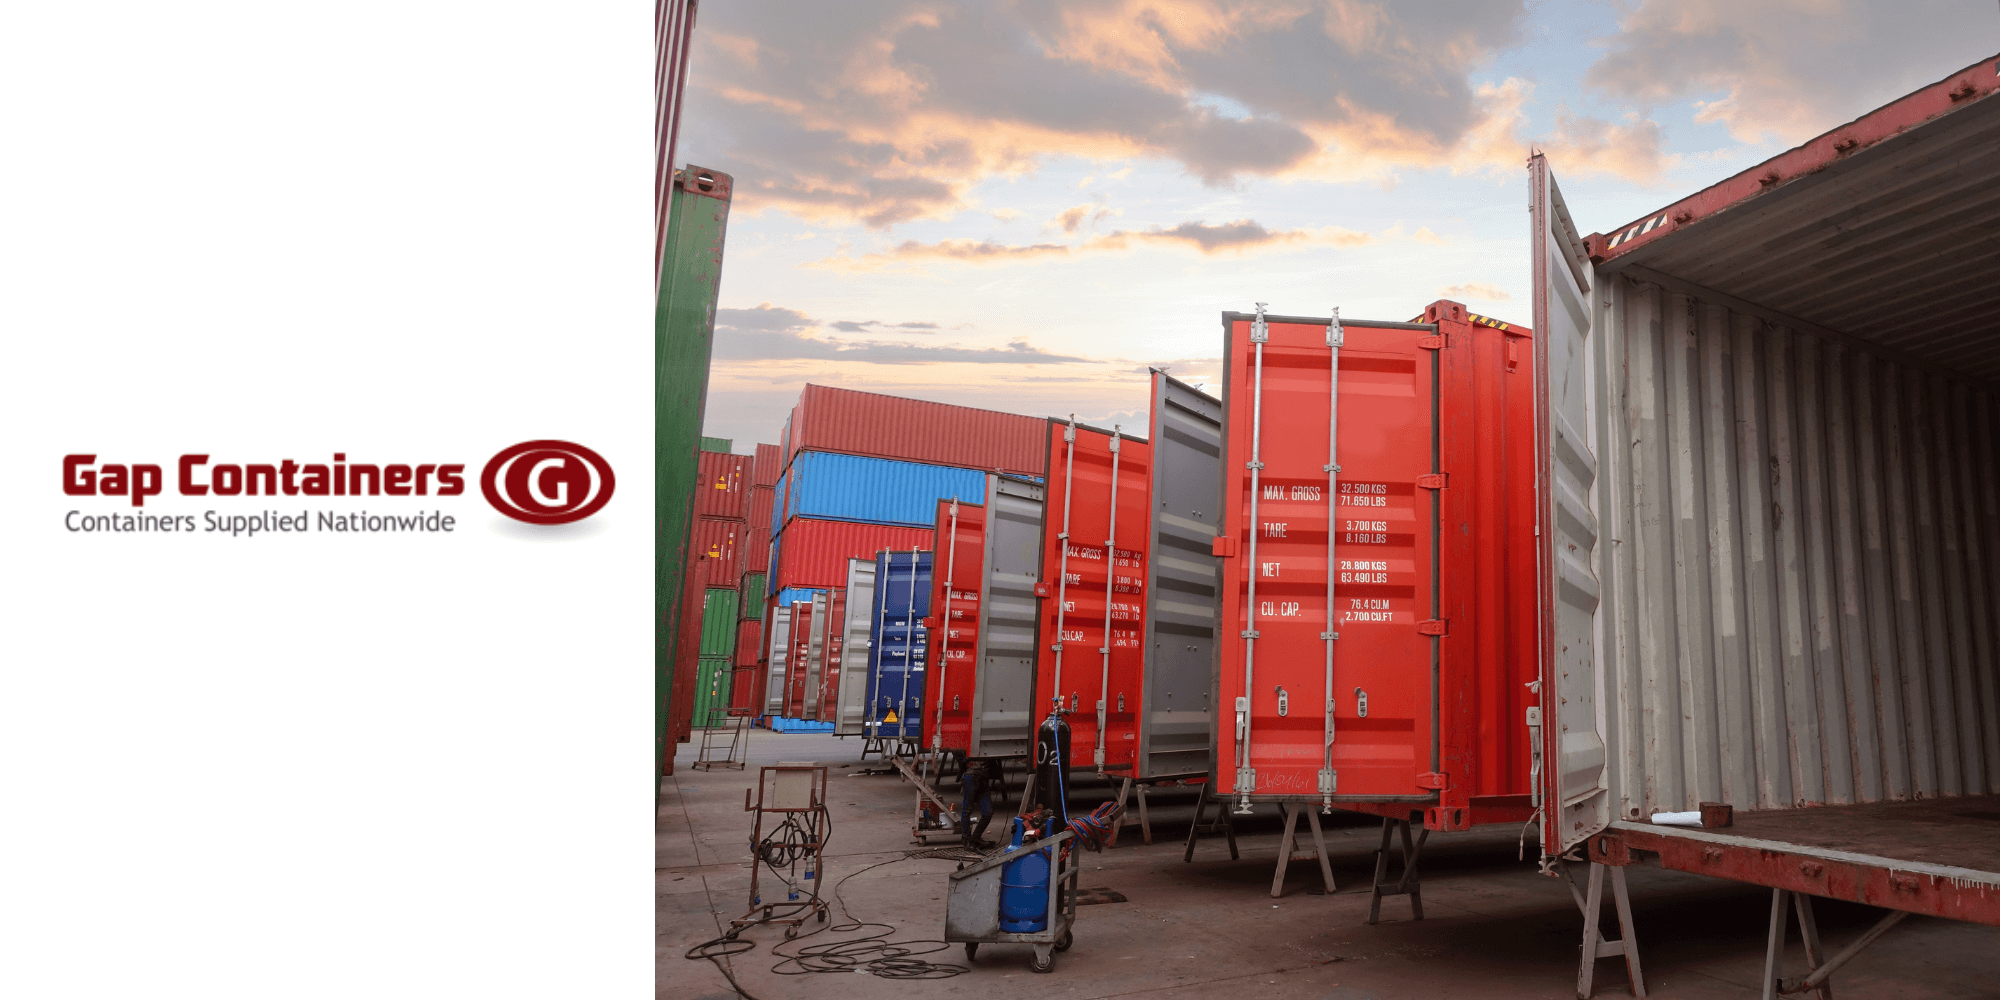 container maintenance at Gap Containers